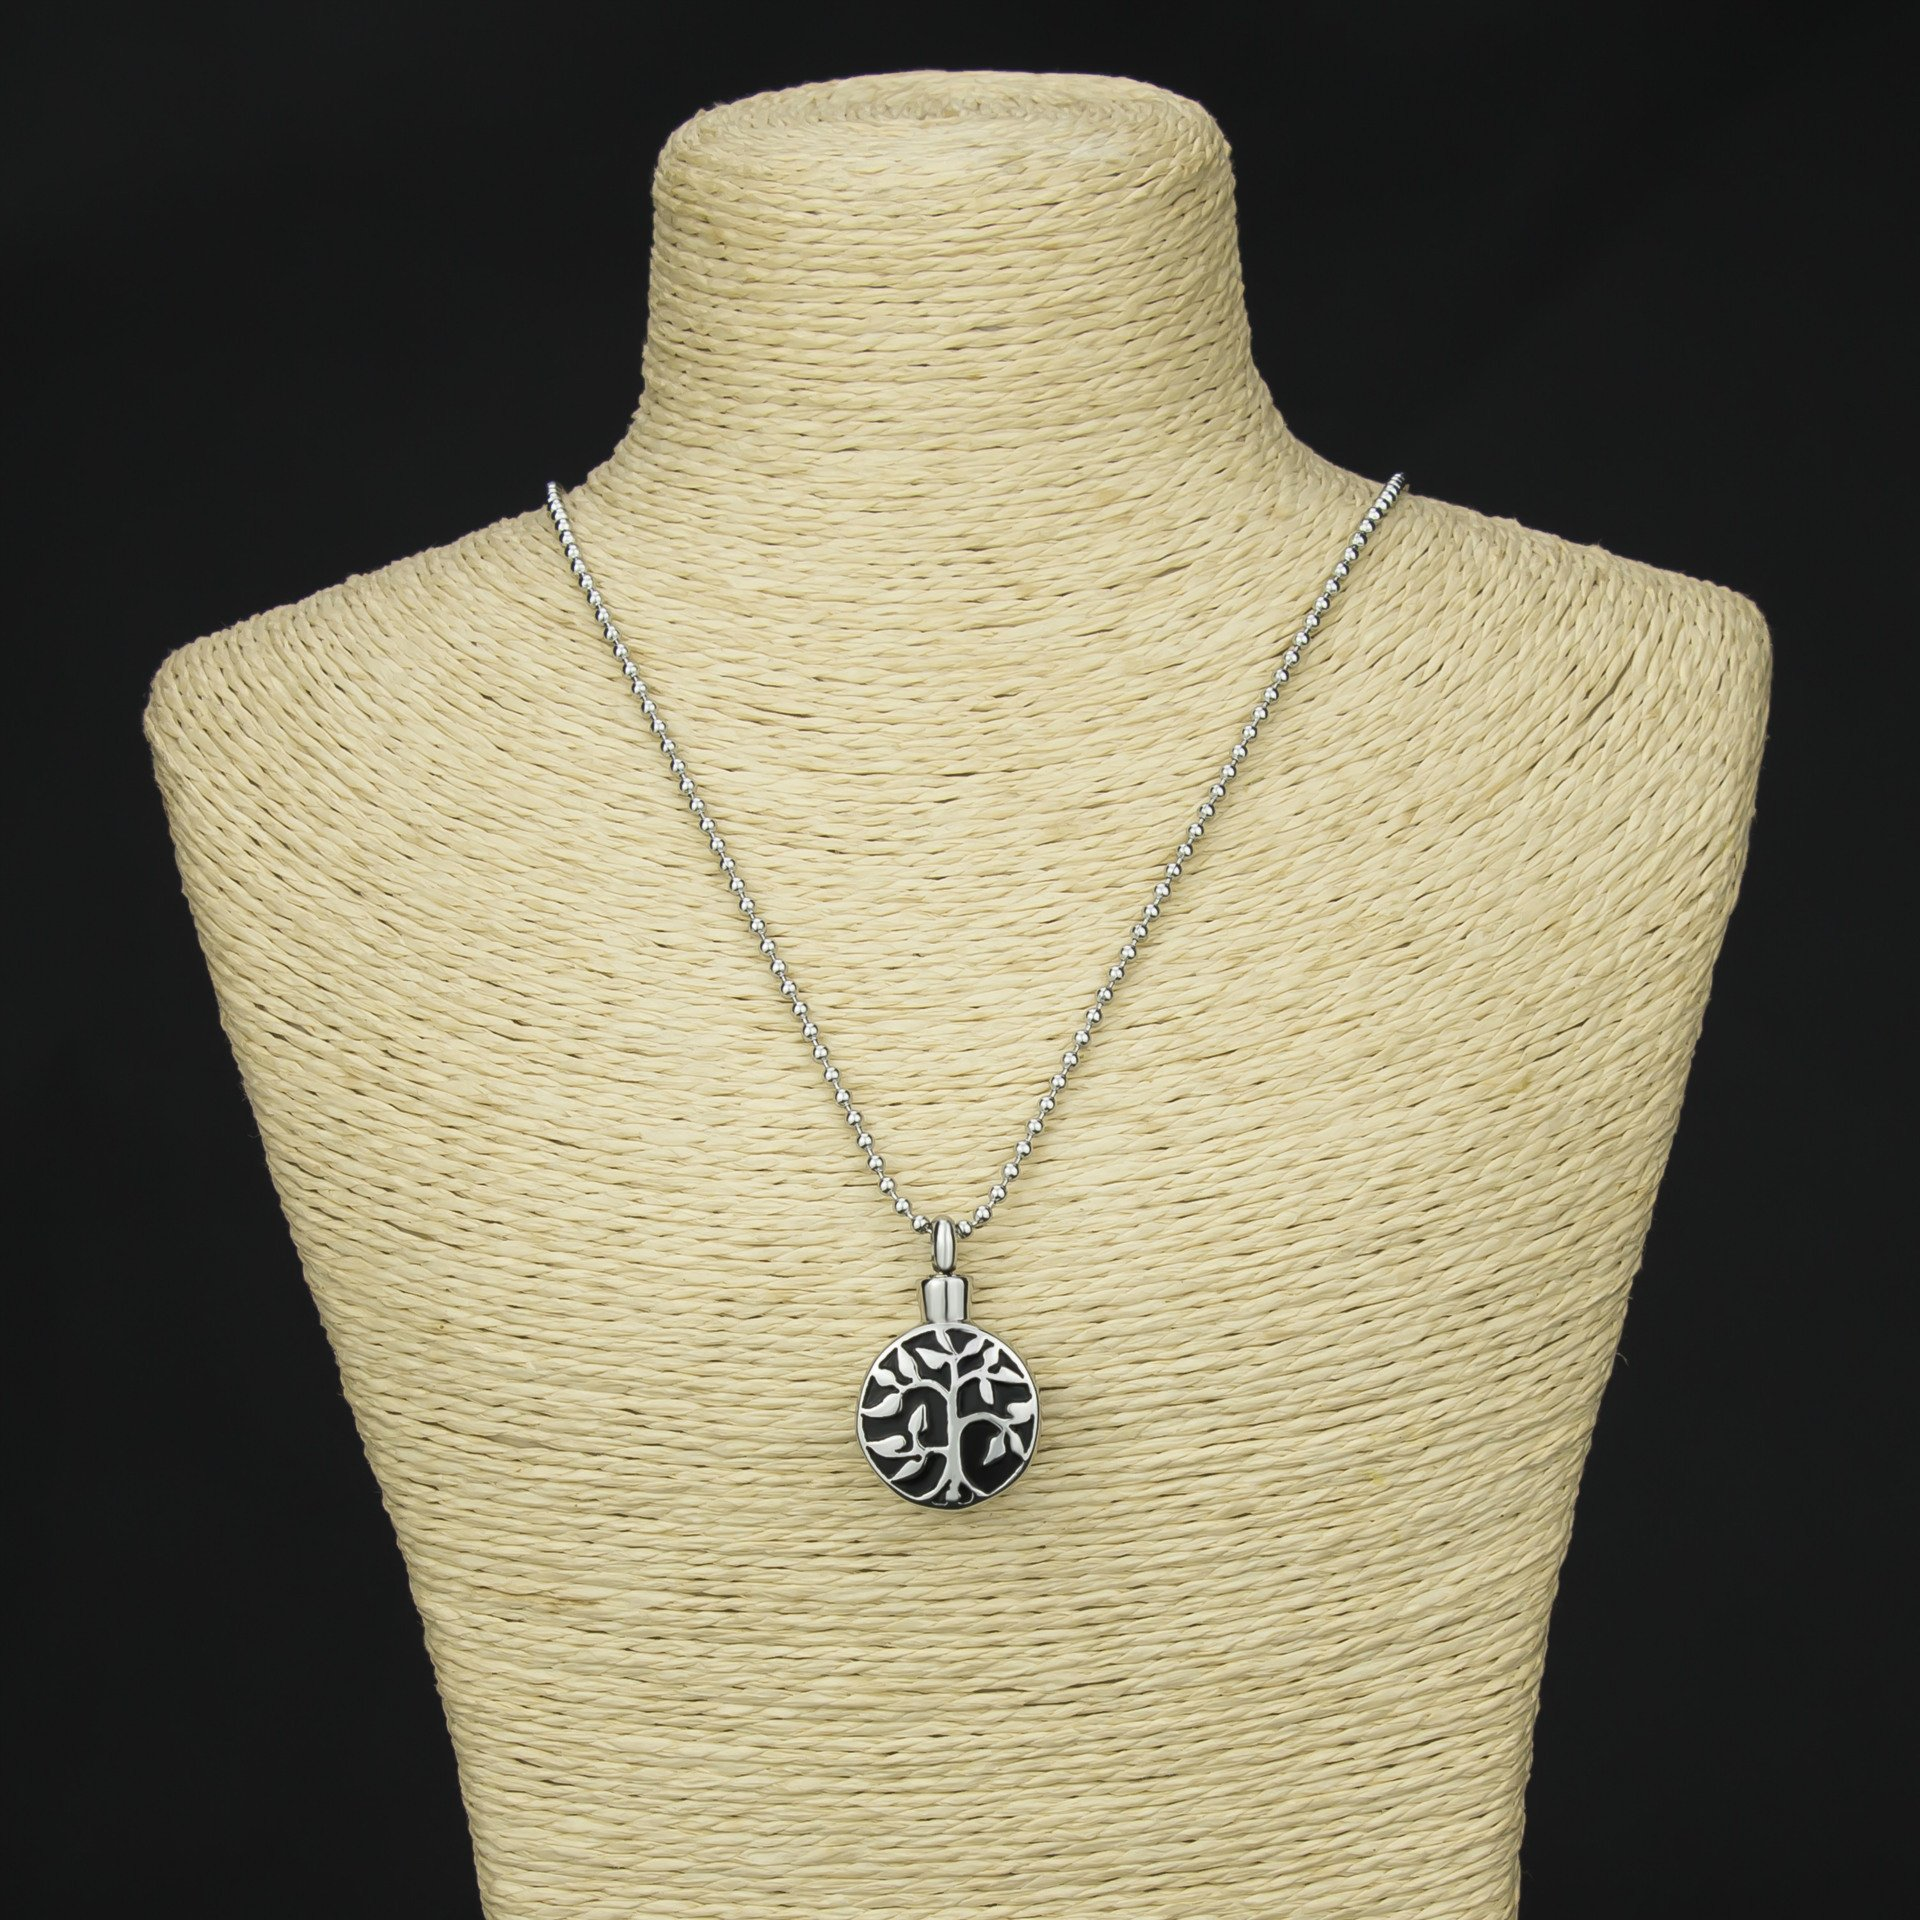 Dreanming Tree of Life Cremation Urn Jewelry Necklace & Pendant for Ashes w/ Funnel Filler Kit Black